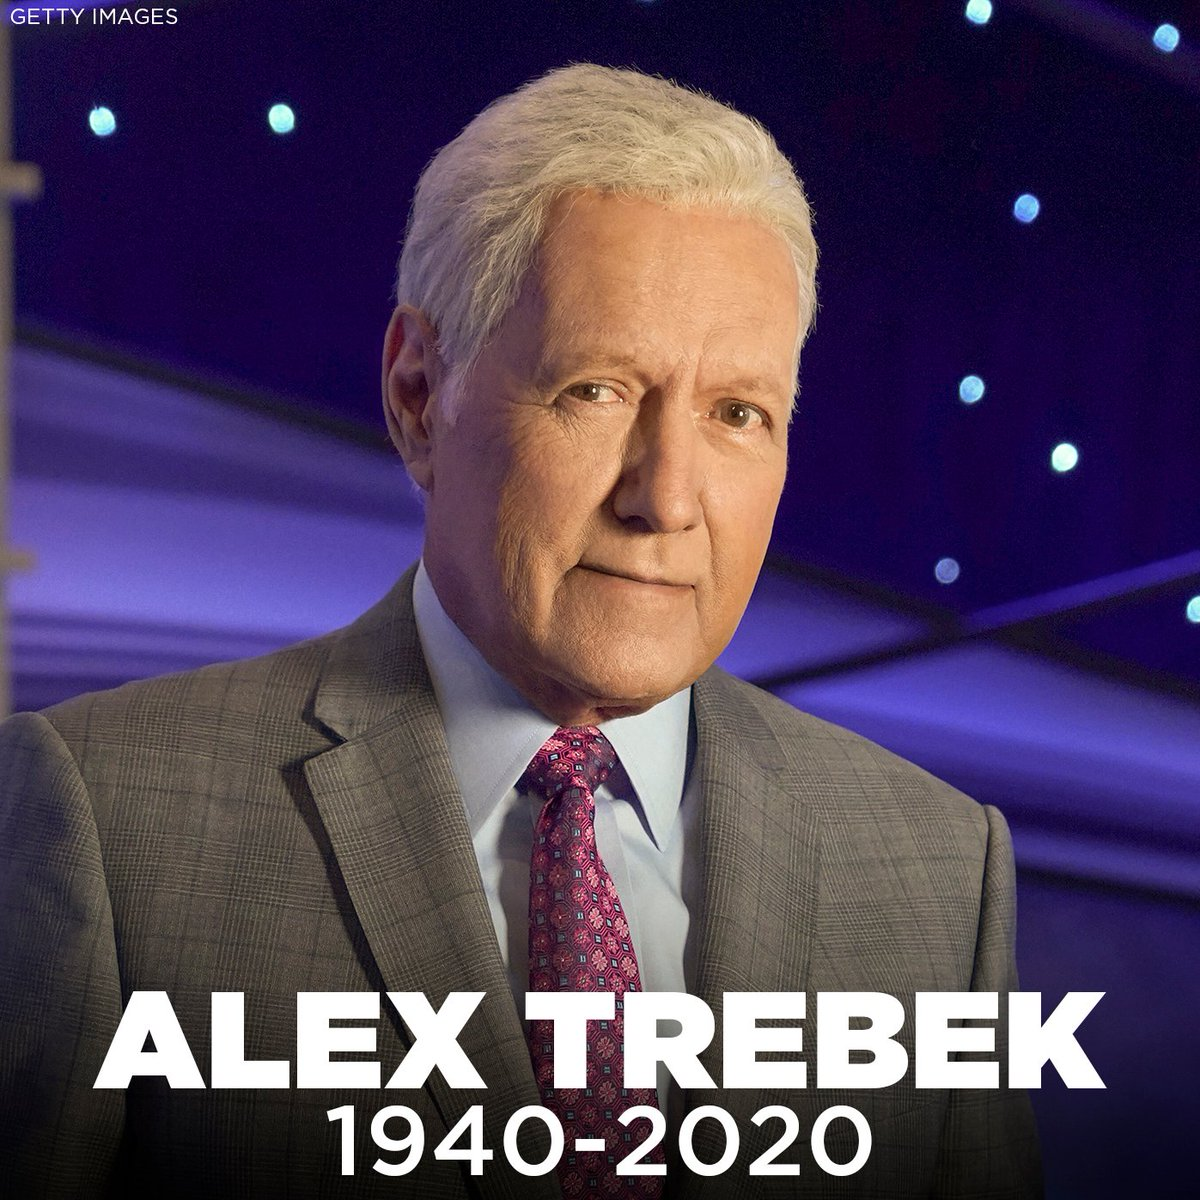 """REST IN PEACE: Alex Trebek, the longtime host of """"Jeopardy,"""" has died nearly a year and a half after his stage 4 pancreatic cancer diagnosis. He was 80. https://t.co/jvcLLYzOX8 https://t.co/1BnsZ5NOHV"""